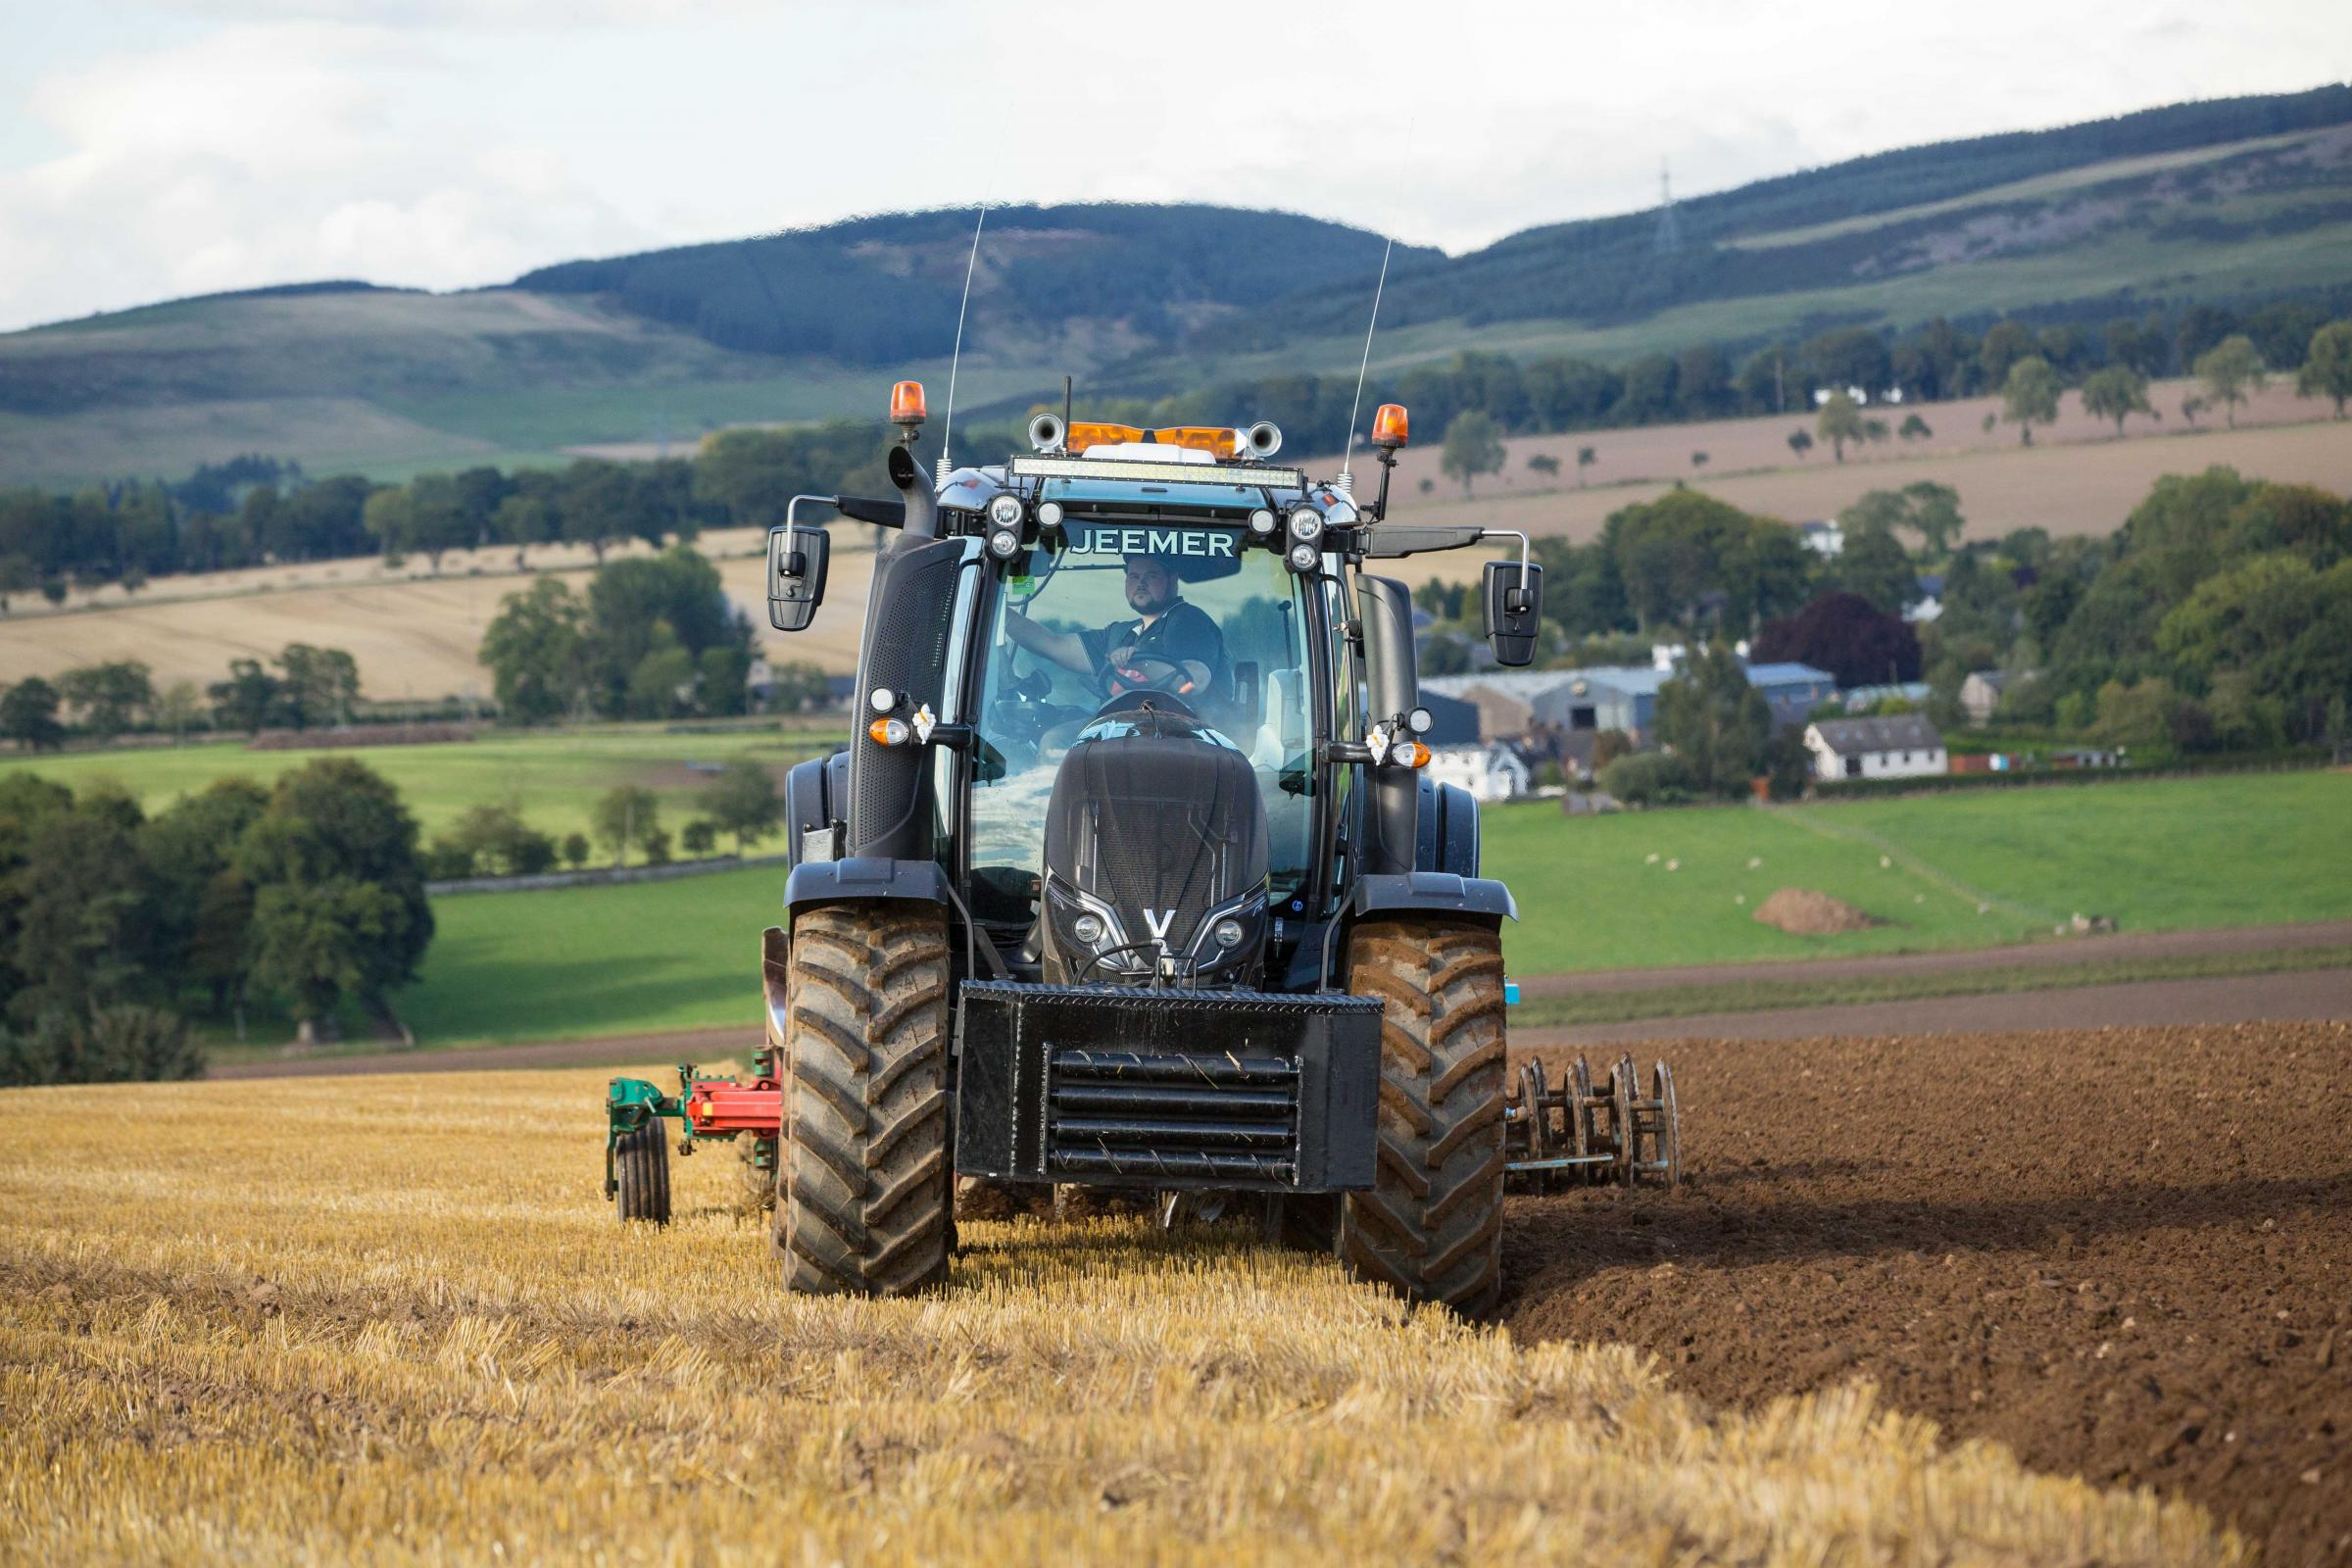 Hard at work the black T174 Valtra ploughing in spring oat stubble with a five furrow Kvernland and Lemkin press to prepare for next year's winter wheat crop at West Adamston Farm, Dundee.  Ref:EC0609183608